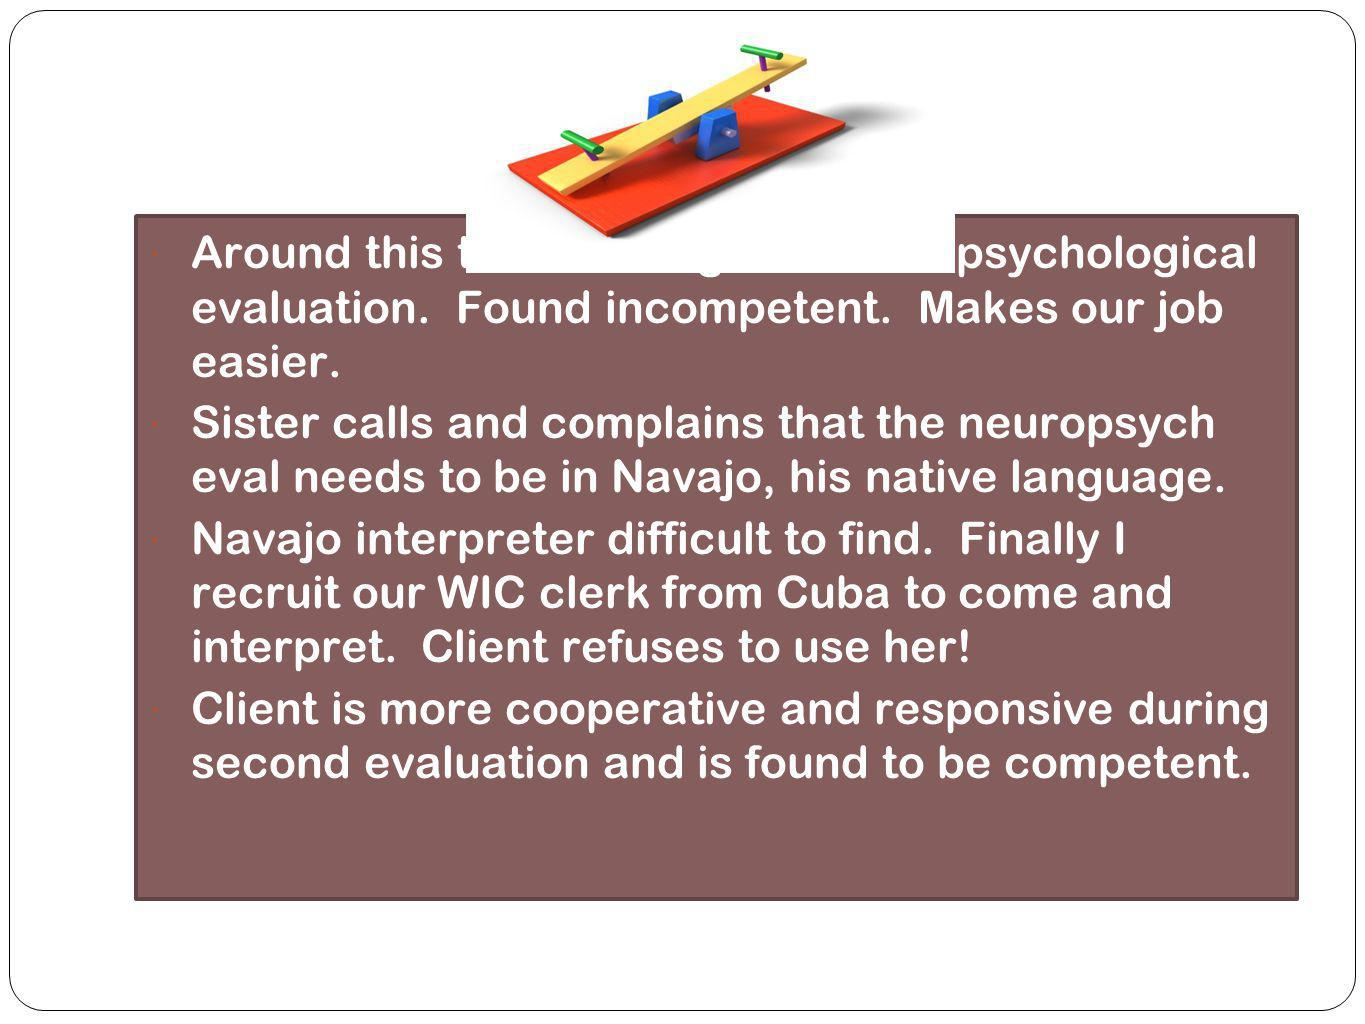 a Around this time client given neuropsychological evaluation. Found incompetent. Makes our job easier.